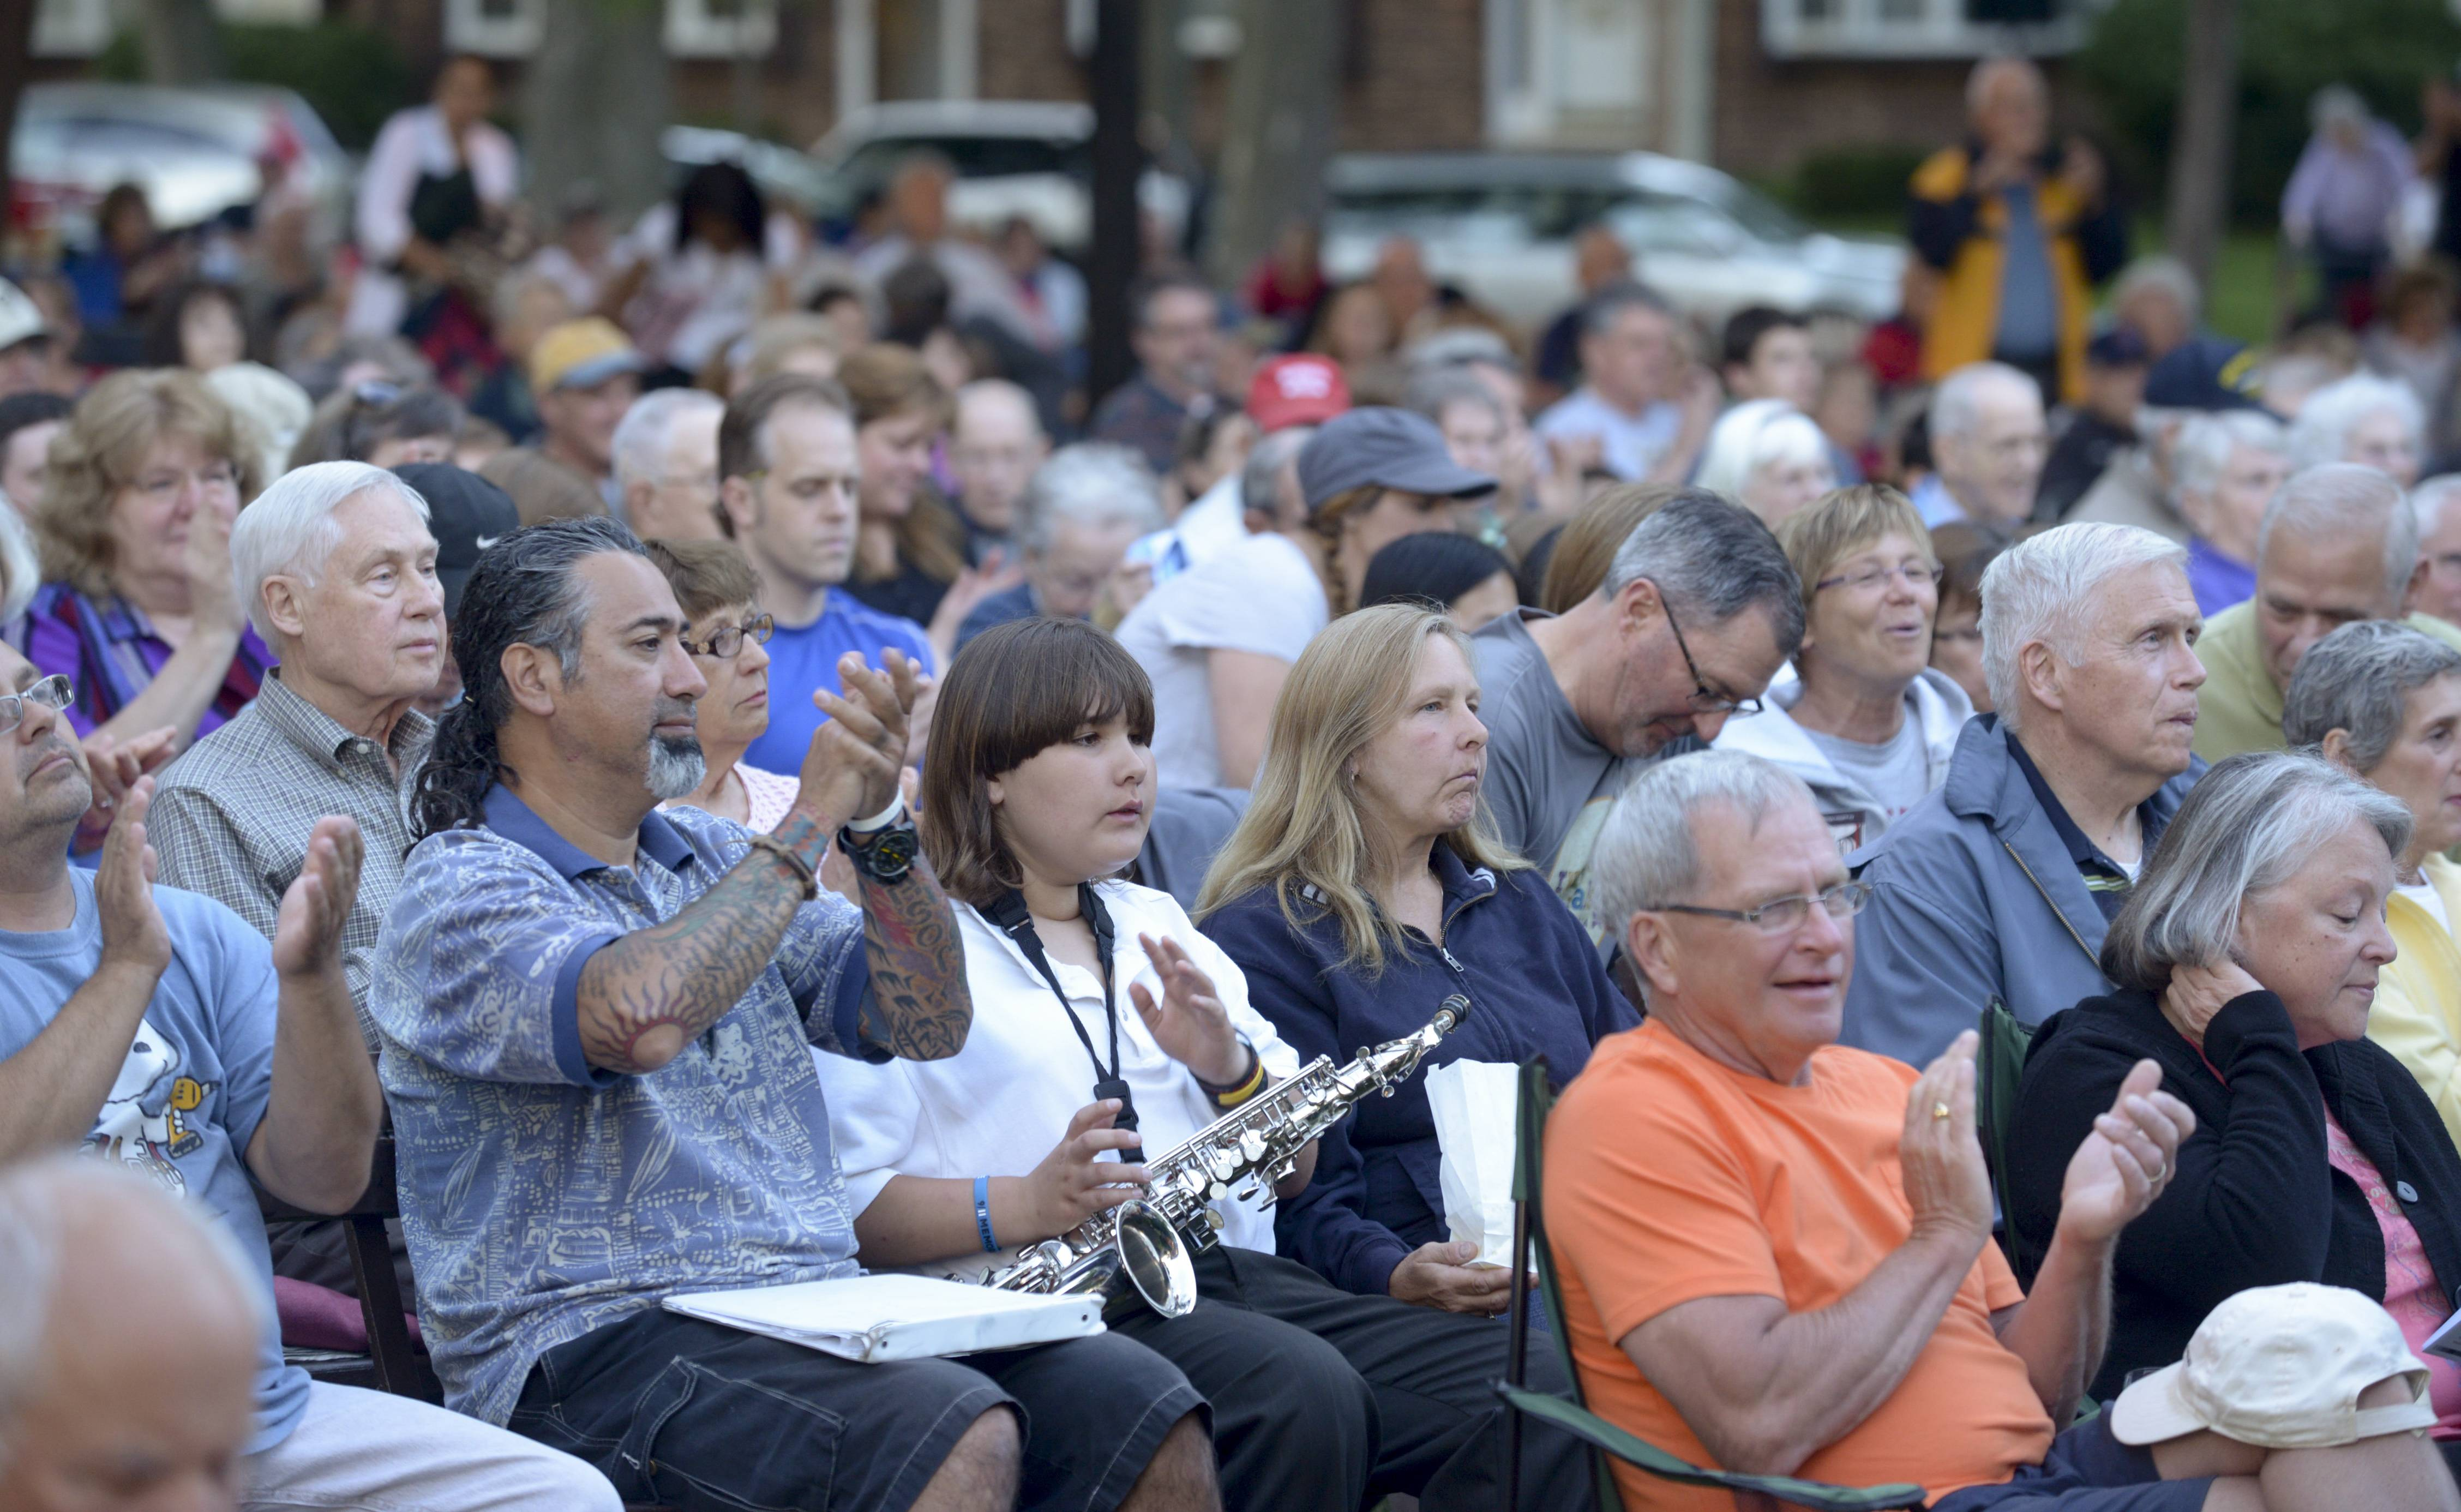 A large crowd turned out to listen and watch the Wheaton Municipal Band kick off their 2014 summer season at Memorial Park in Wheaton Thursday evening.